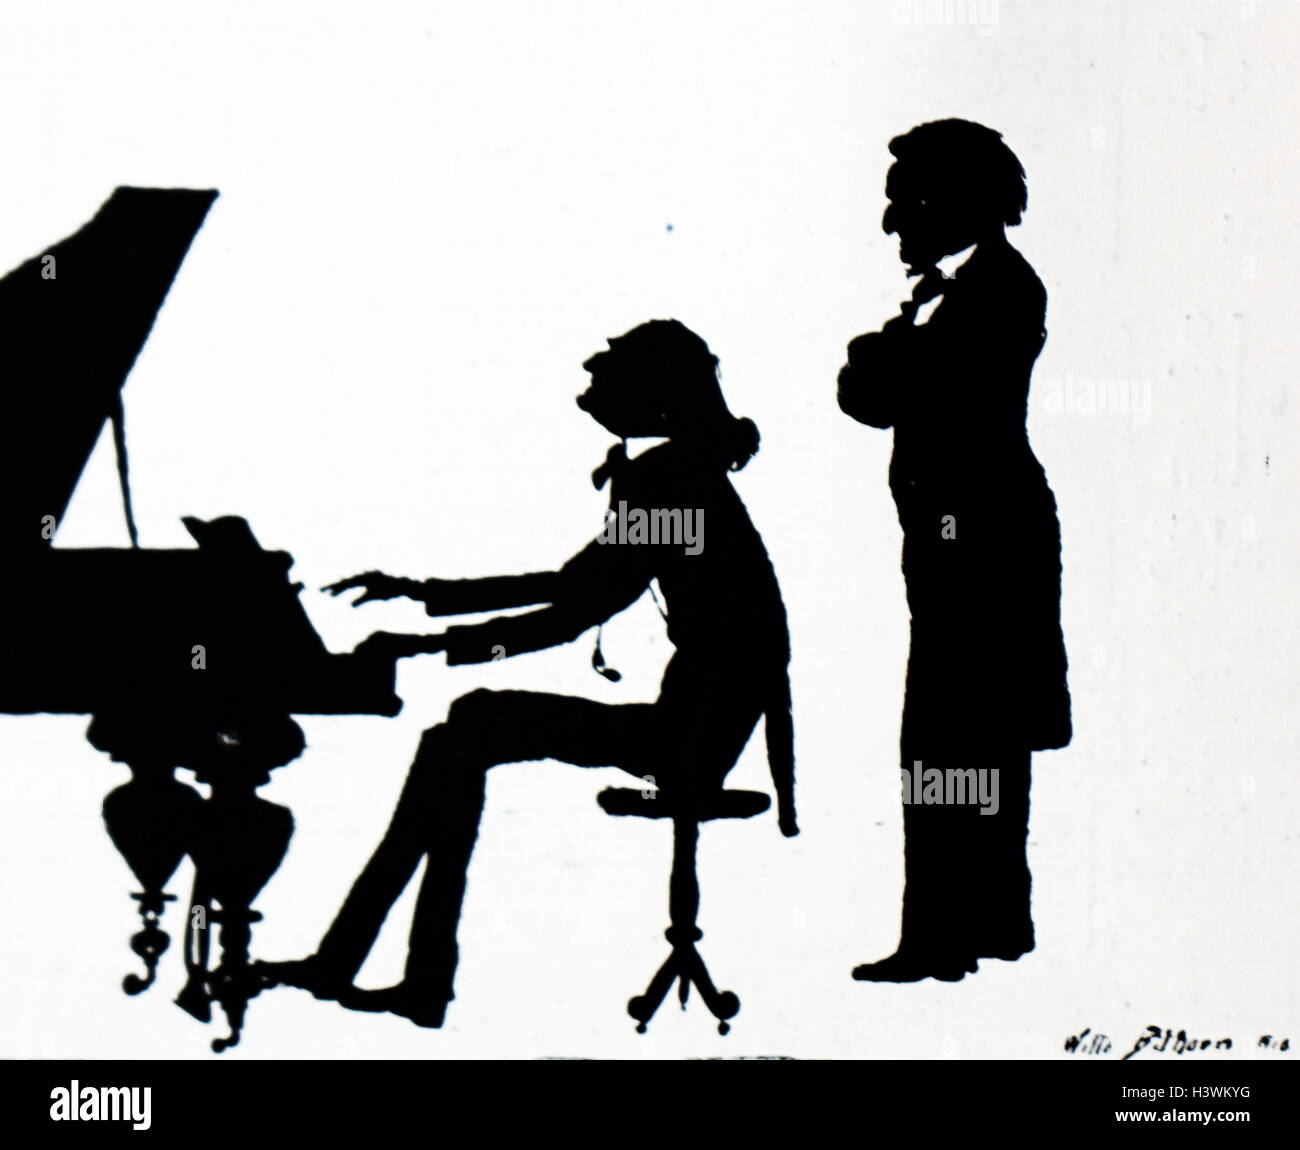 Silhouette of Franz Liszt and Richard Wagner - Stock Image